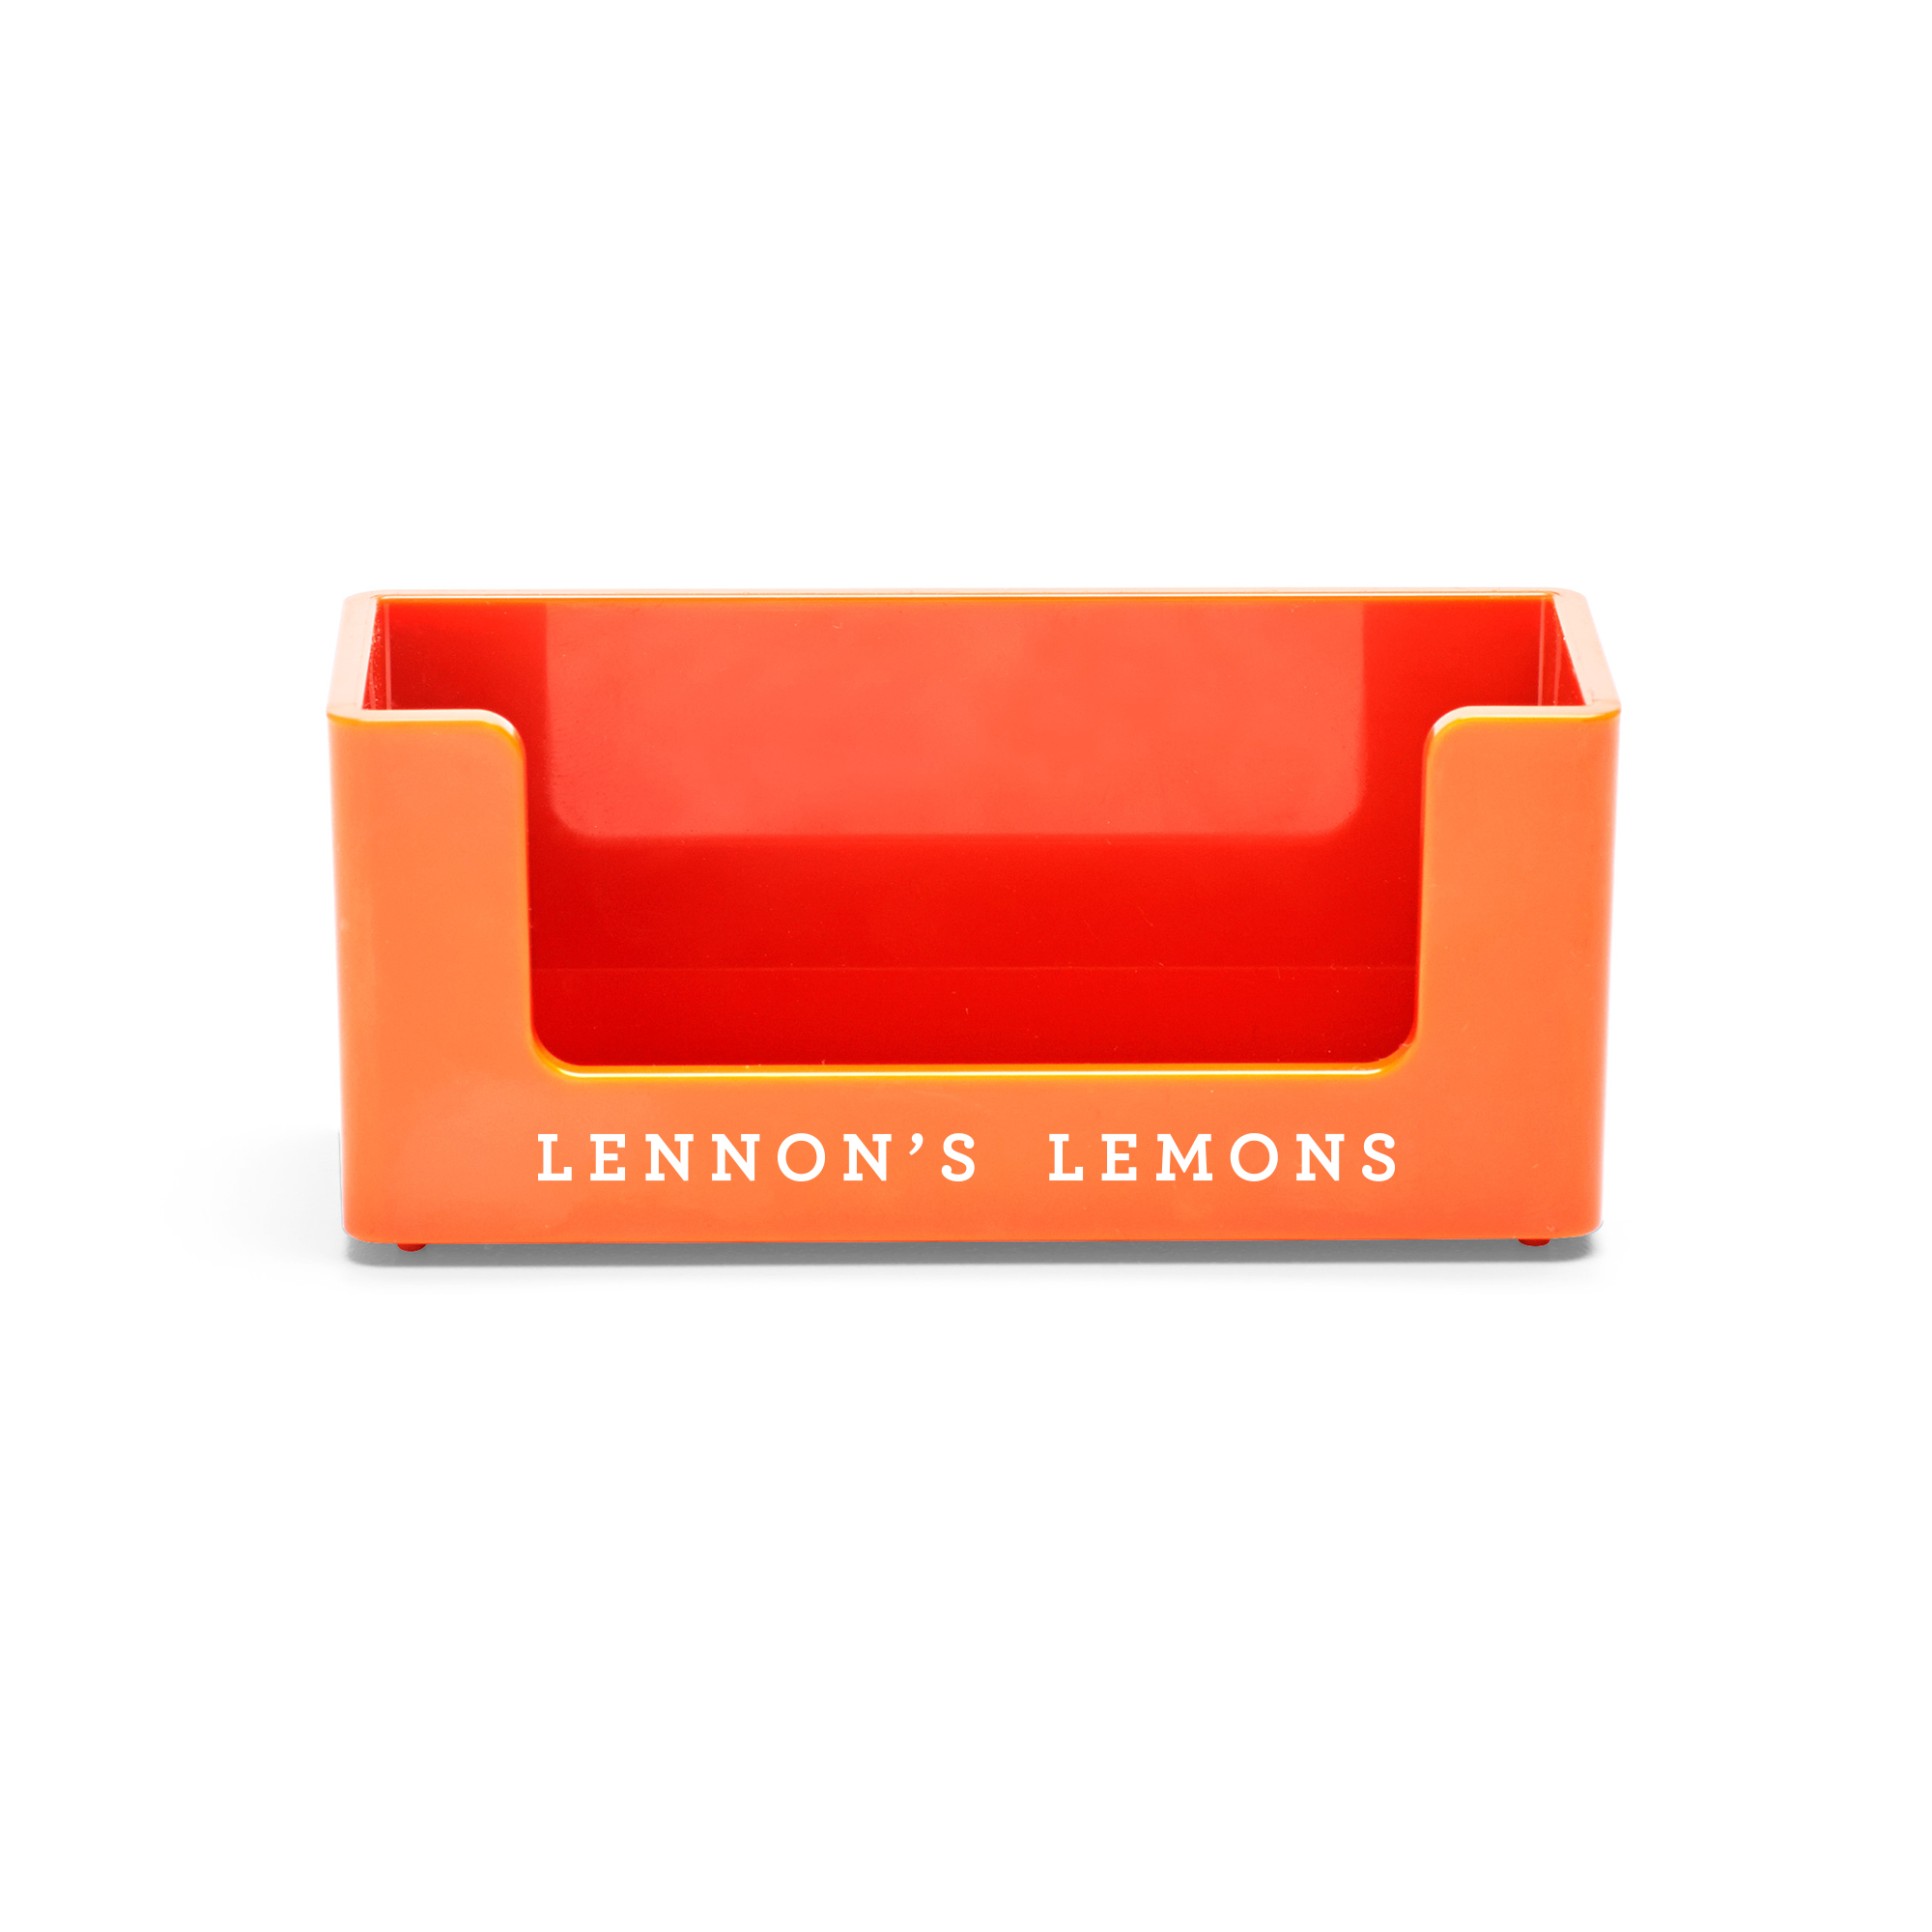 Custom orange business card holder desk accessories poppin custom orange business card holderorangehi res reheart Gallery